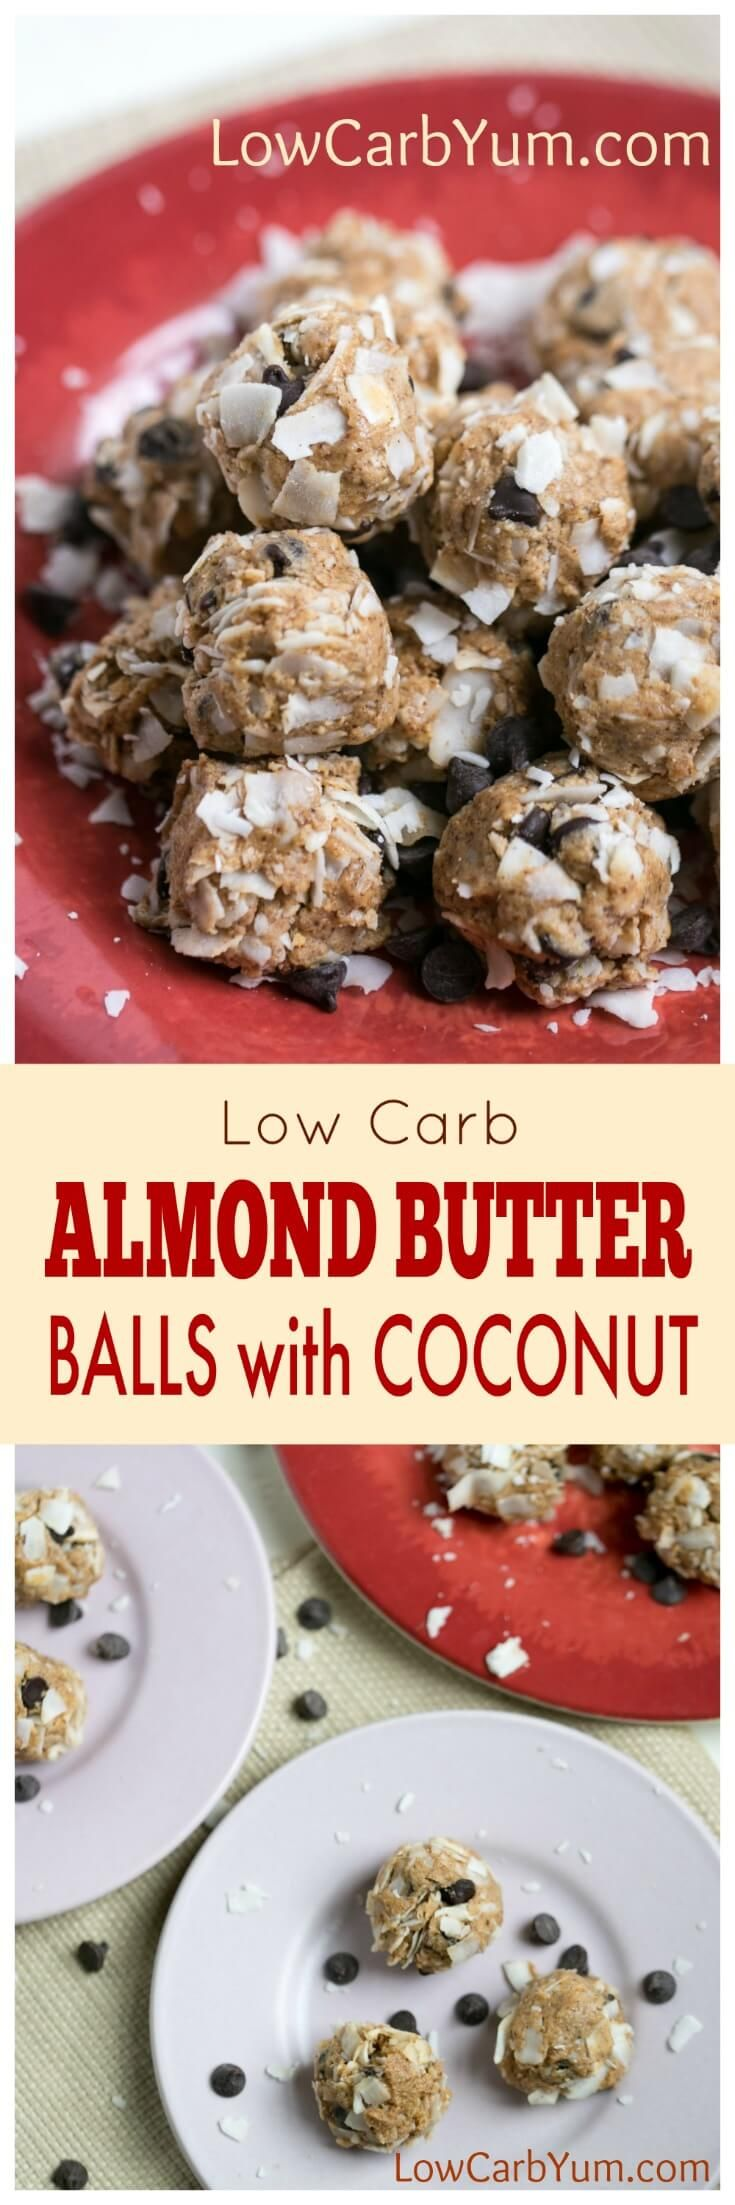 A no bake almond butter balls recipe that's quick and easy to make. These little protein bites are a perfect snack to boost energy during the day.   LowCarbYum.com